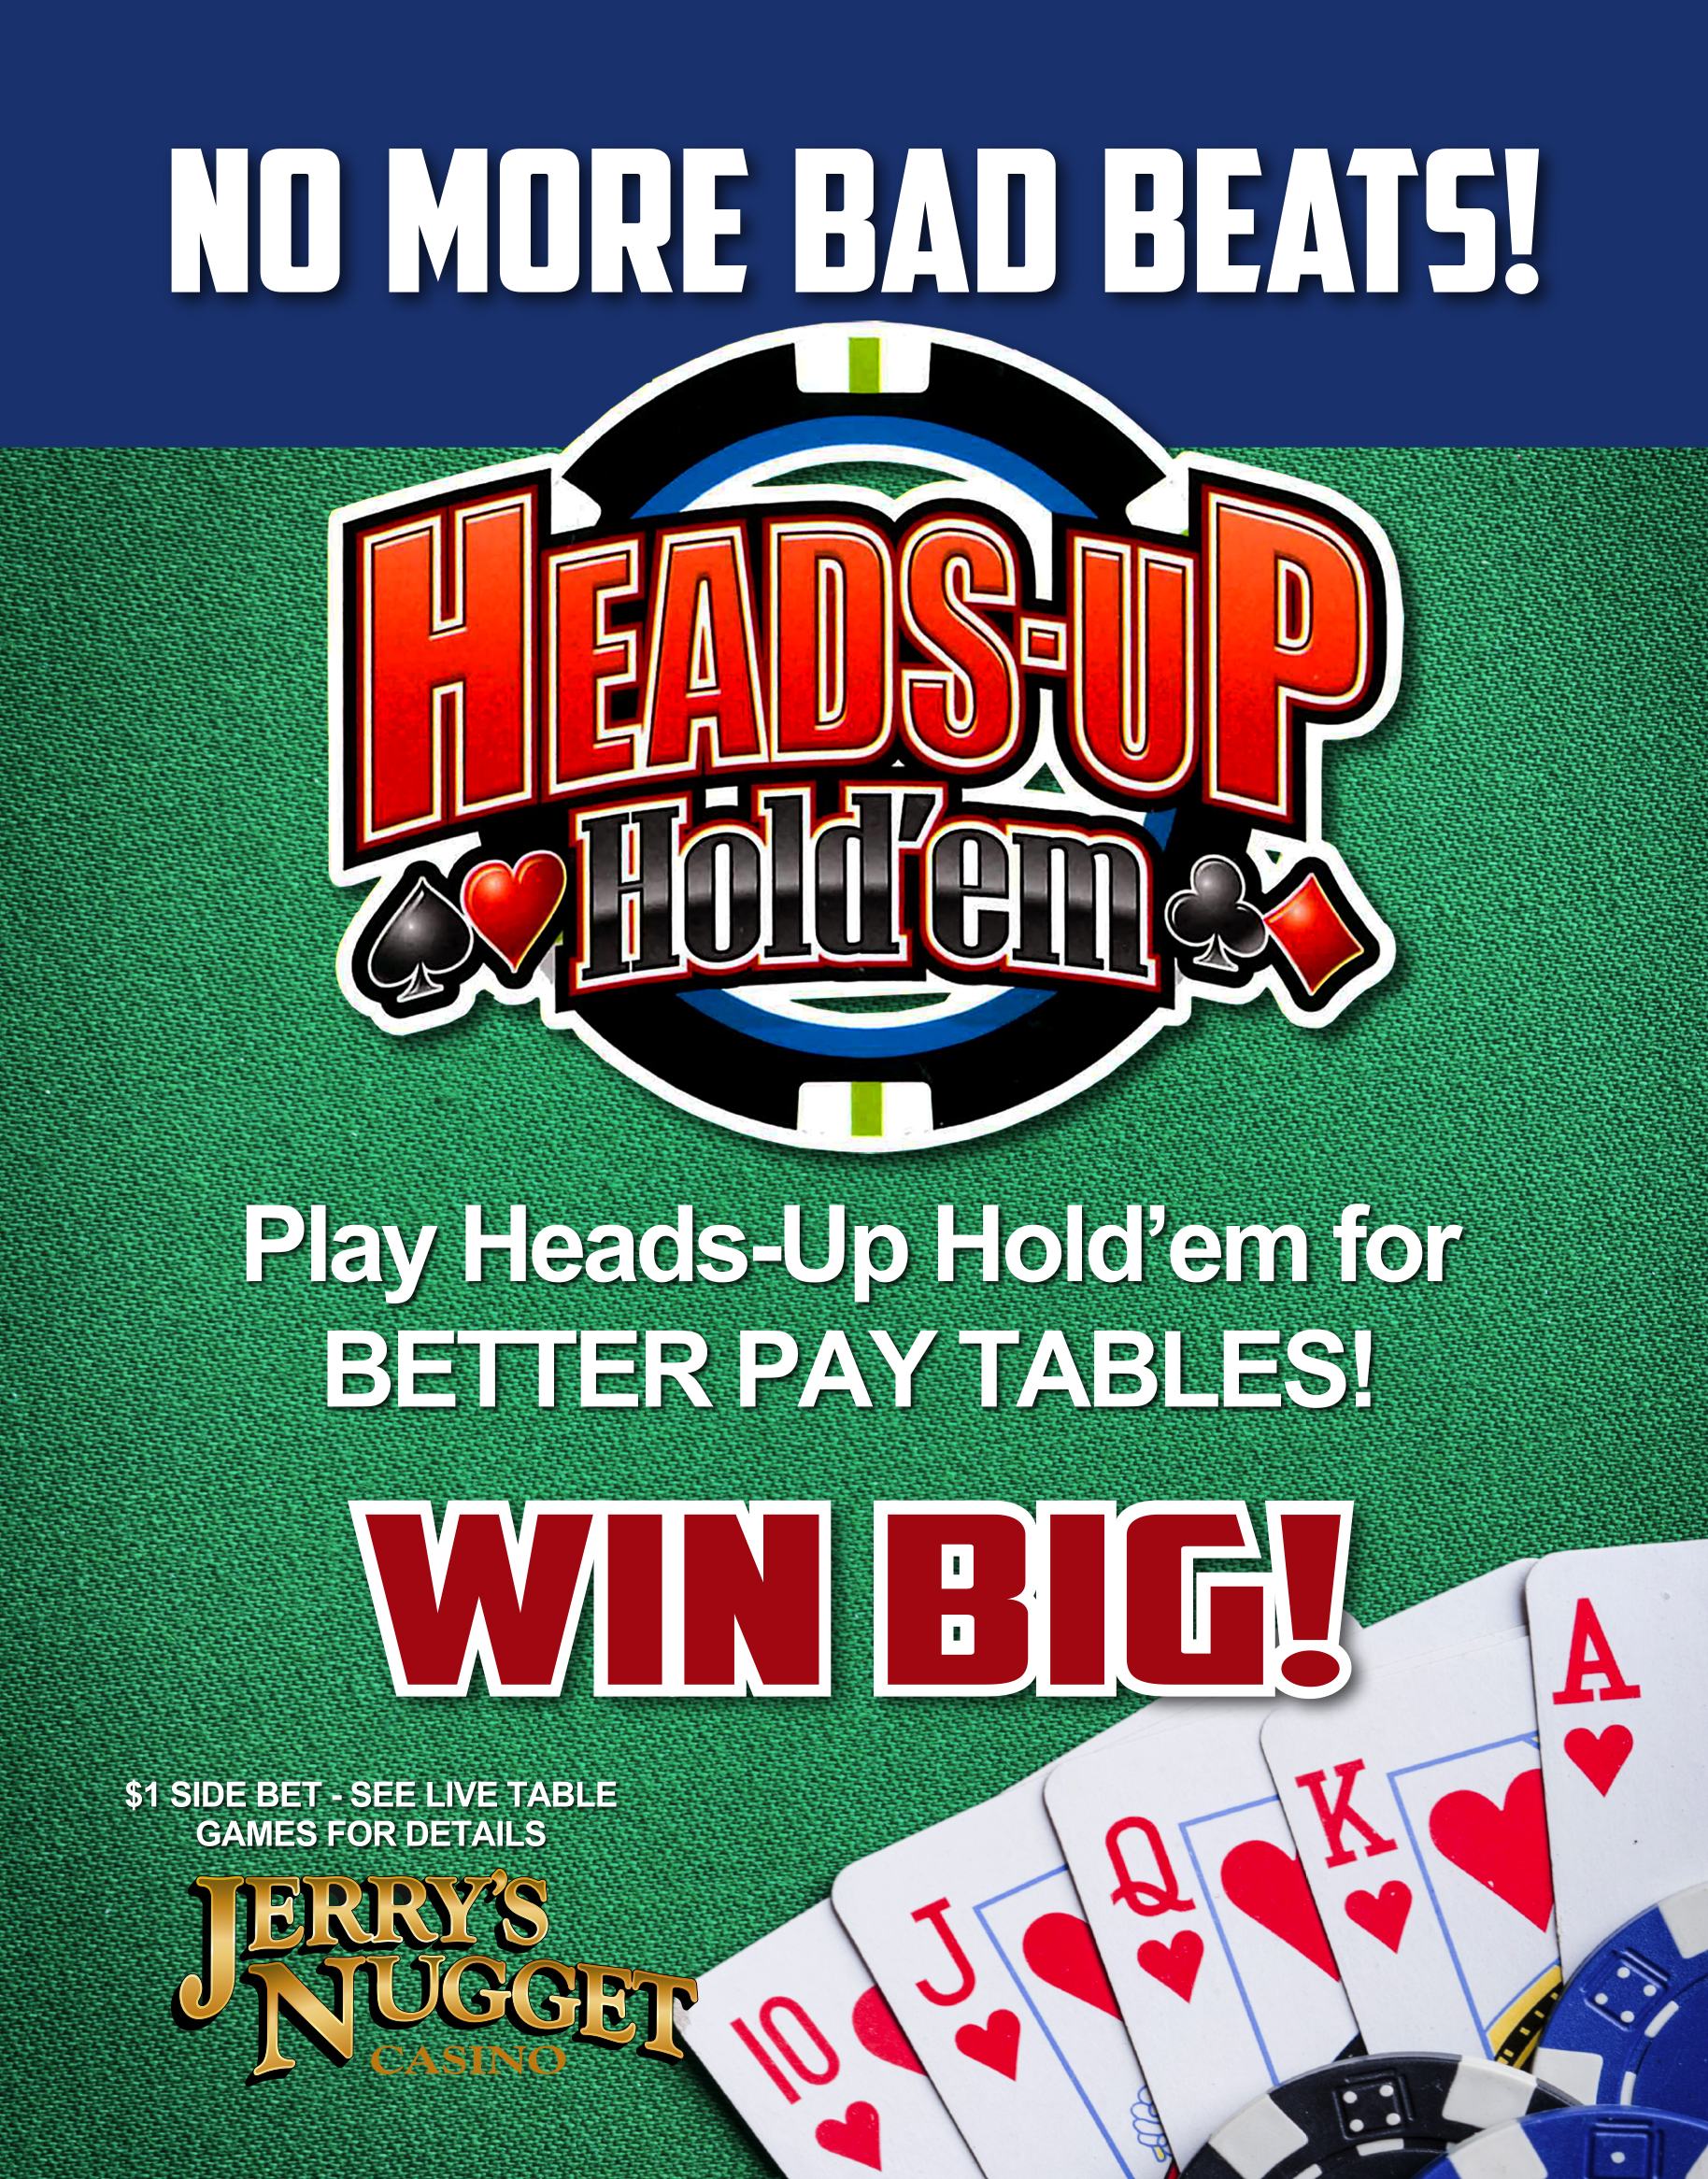 Live Table Games Heads Up Hold 'Em